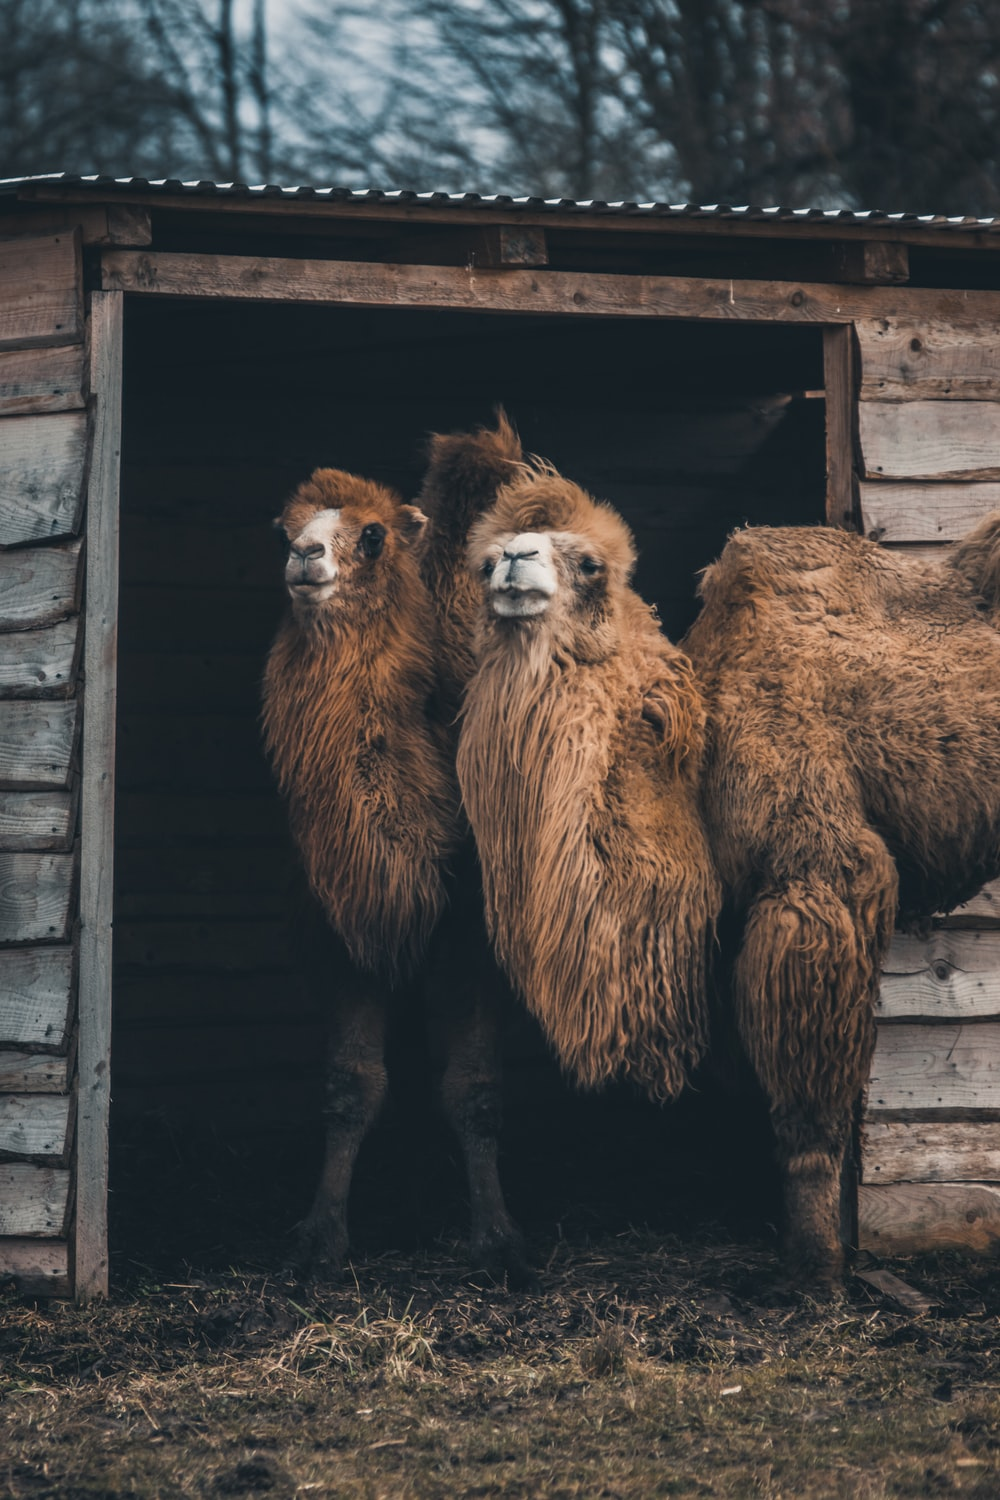 two Bactrian camel near shed